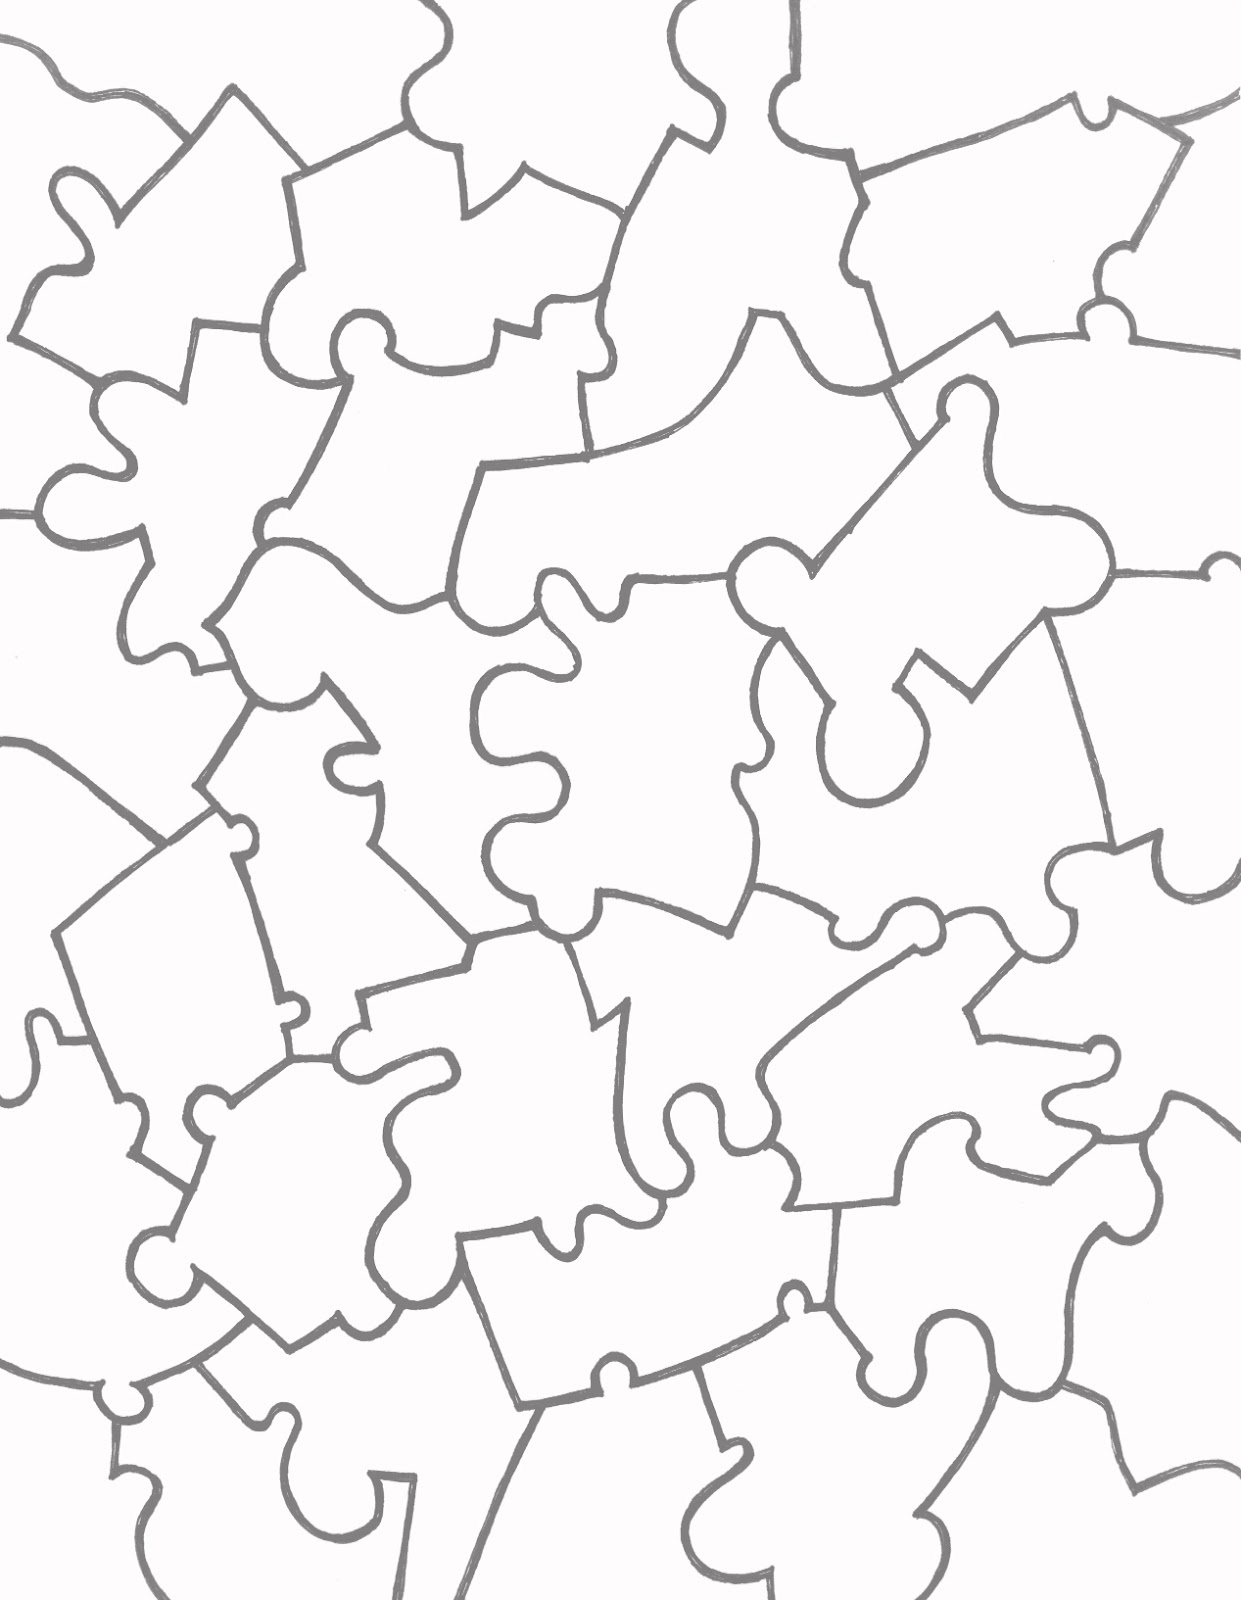 Puzzle Piece Drawing At Getdrawings